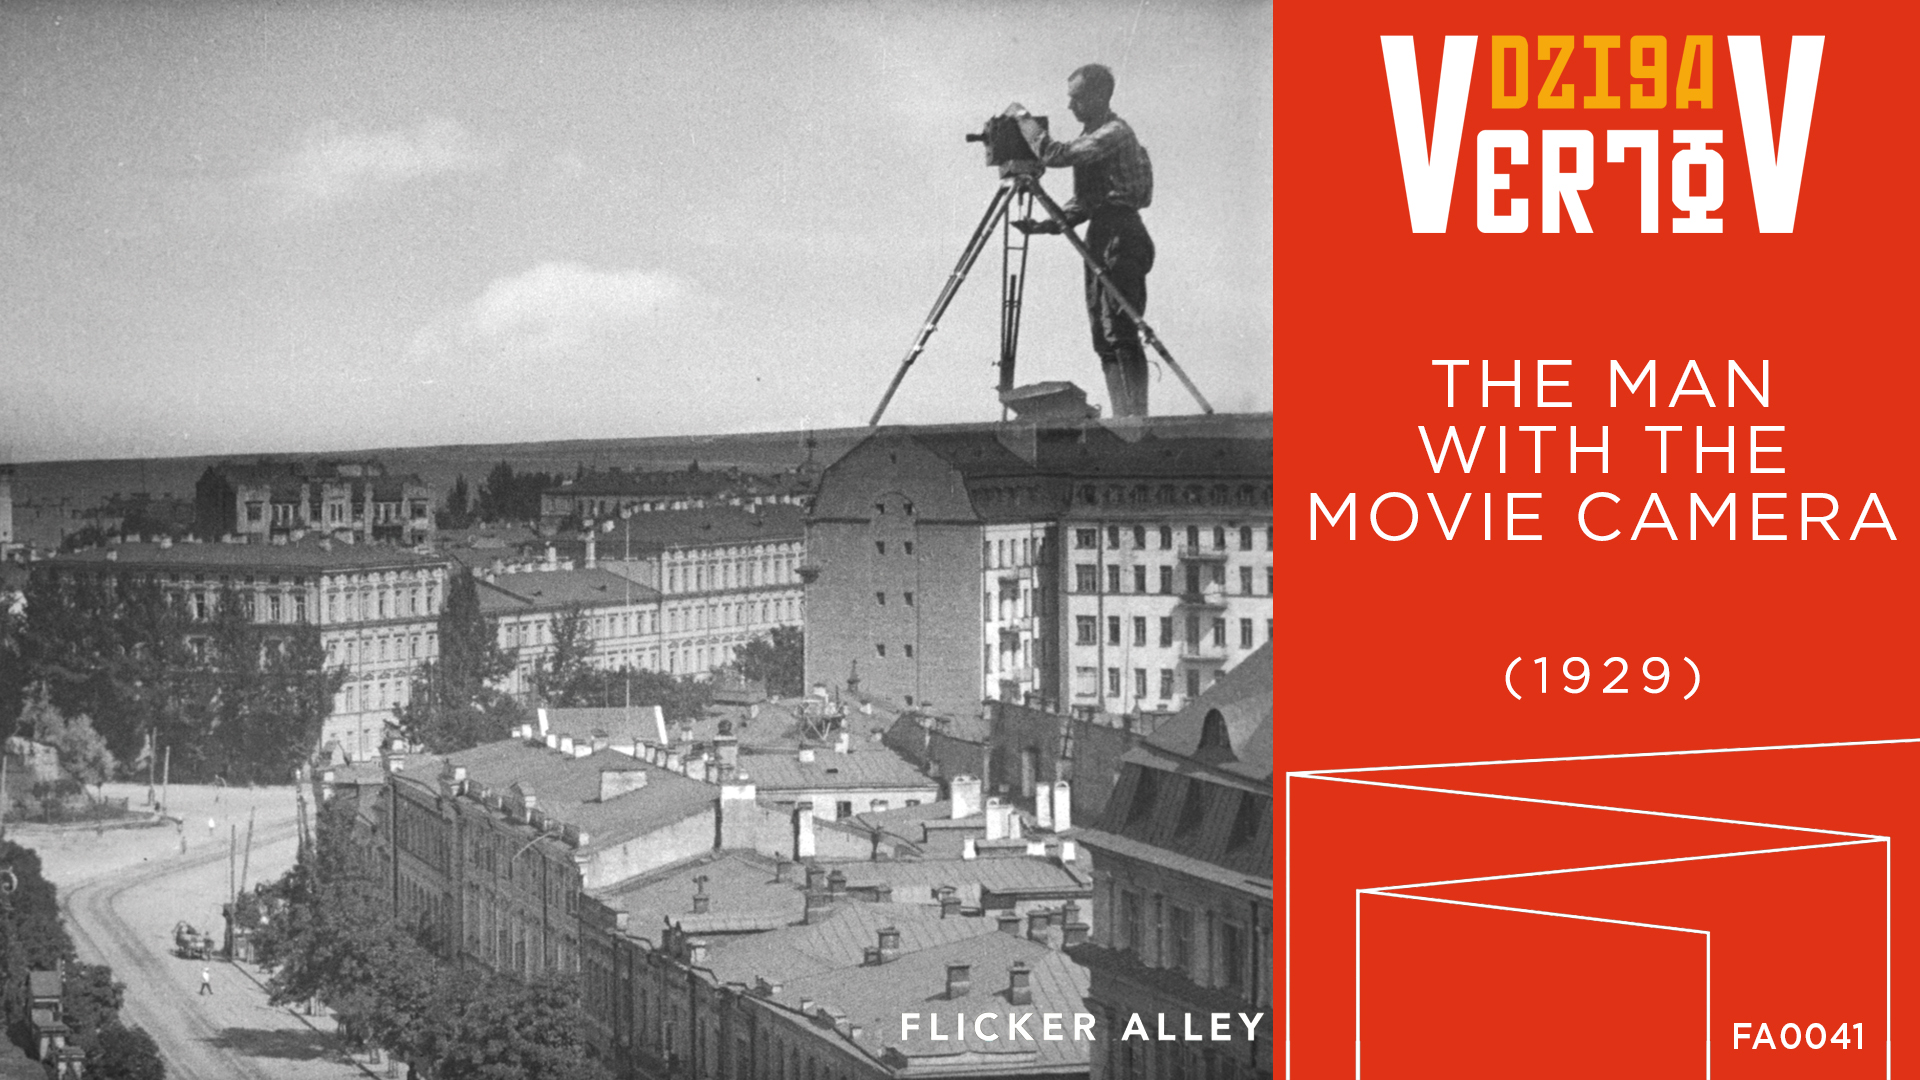 the innovative theories and filmmaking techniques of dziga vertov revolutionized the way films are m